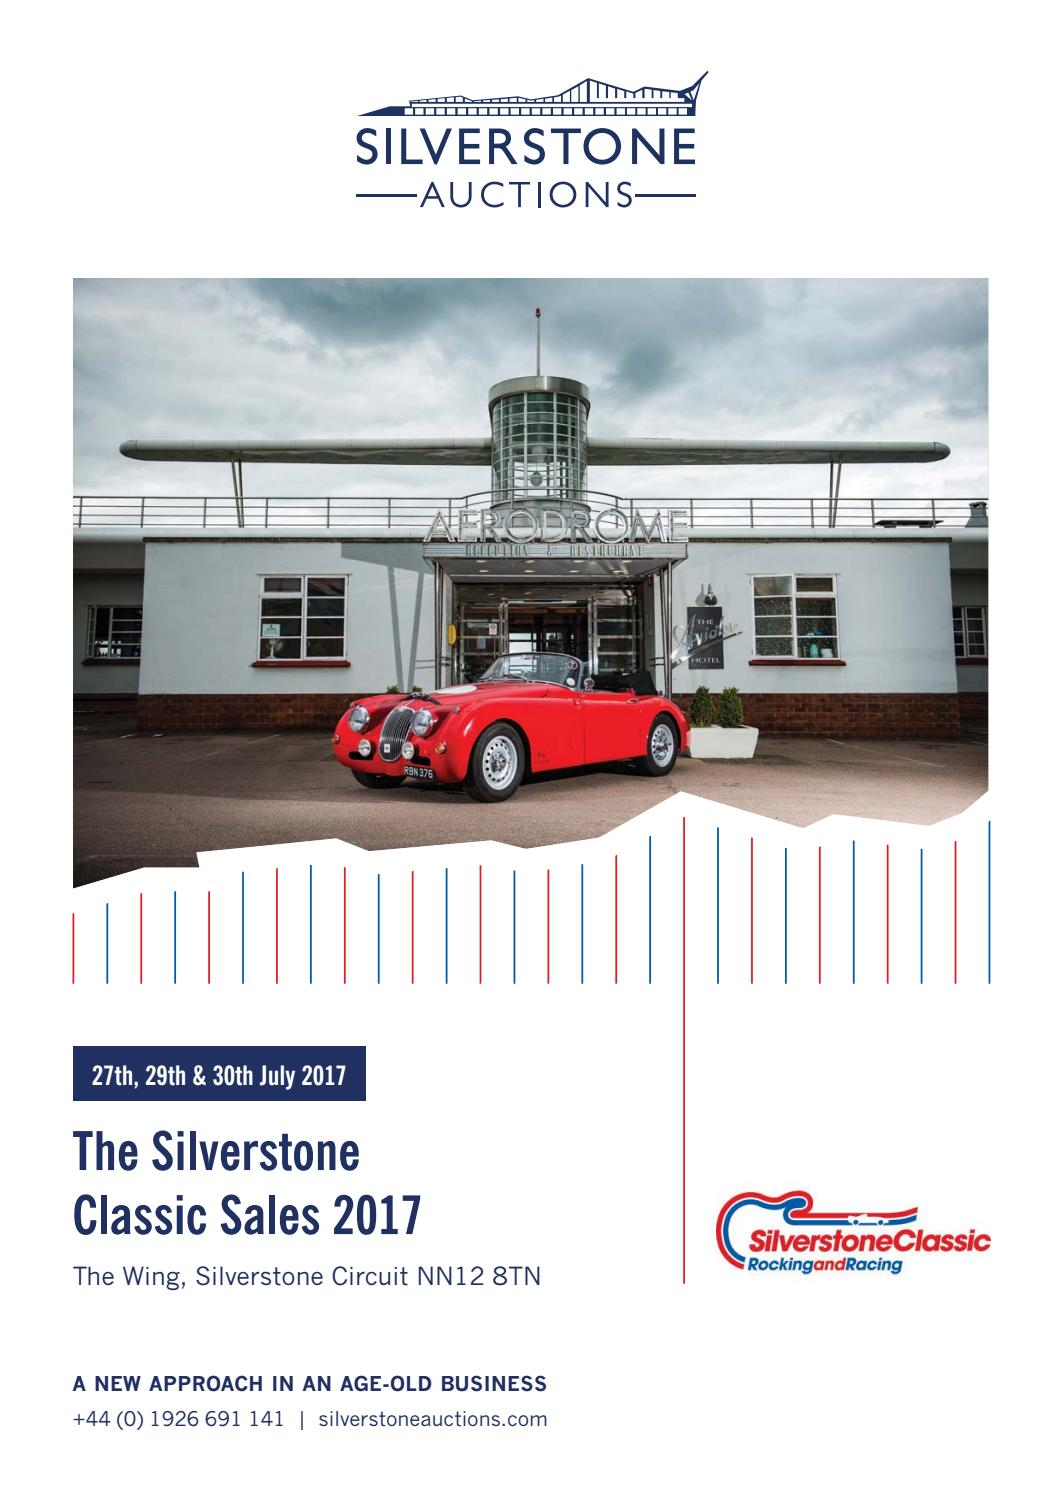 Silverstone Auctions The Classic Sales July 2017 By Vacuum Cleaner Modena Puro Vc 1350 135 Liter 600 Watt Issuu